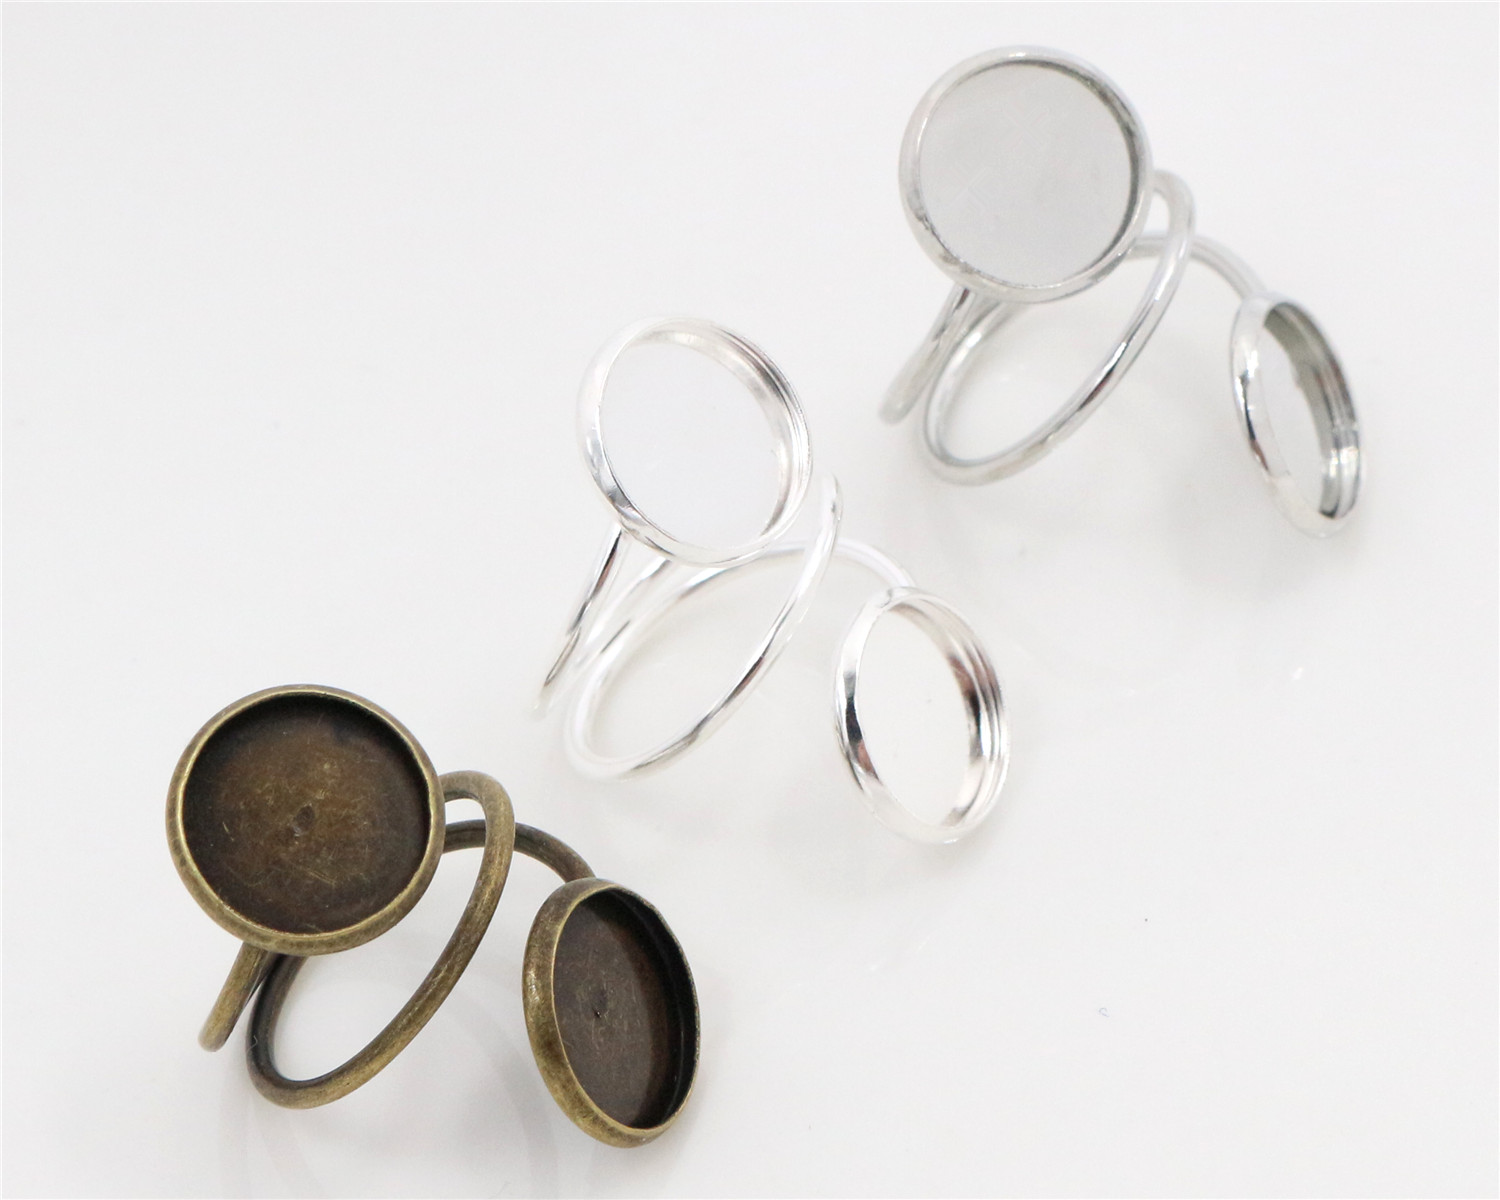 12mm 5pcs 3 Colors Plated Brass Adjustable Ring Settings Blank/Base,Fit 12mm Glass Cabochons,Buttons;Ring Bezels